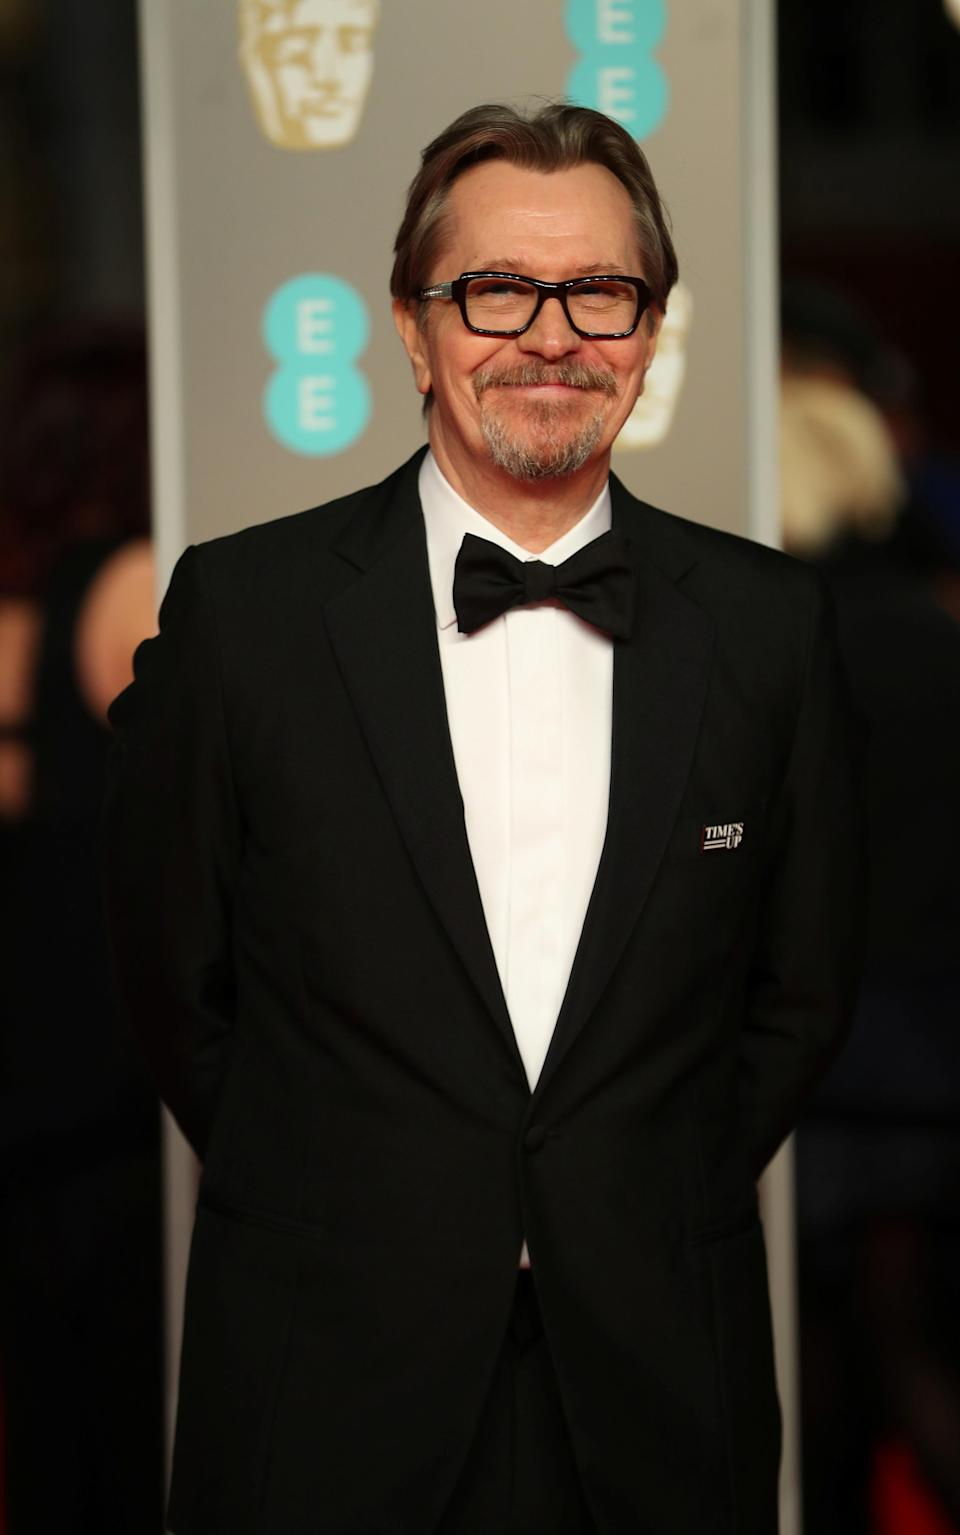 Gary Oldman shows his support for the #TimesUp campaign.